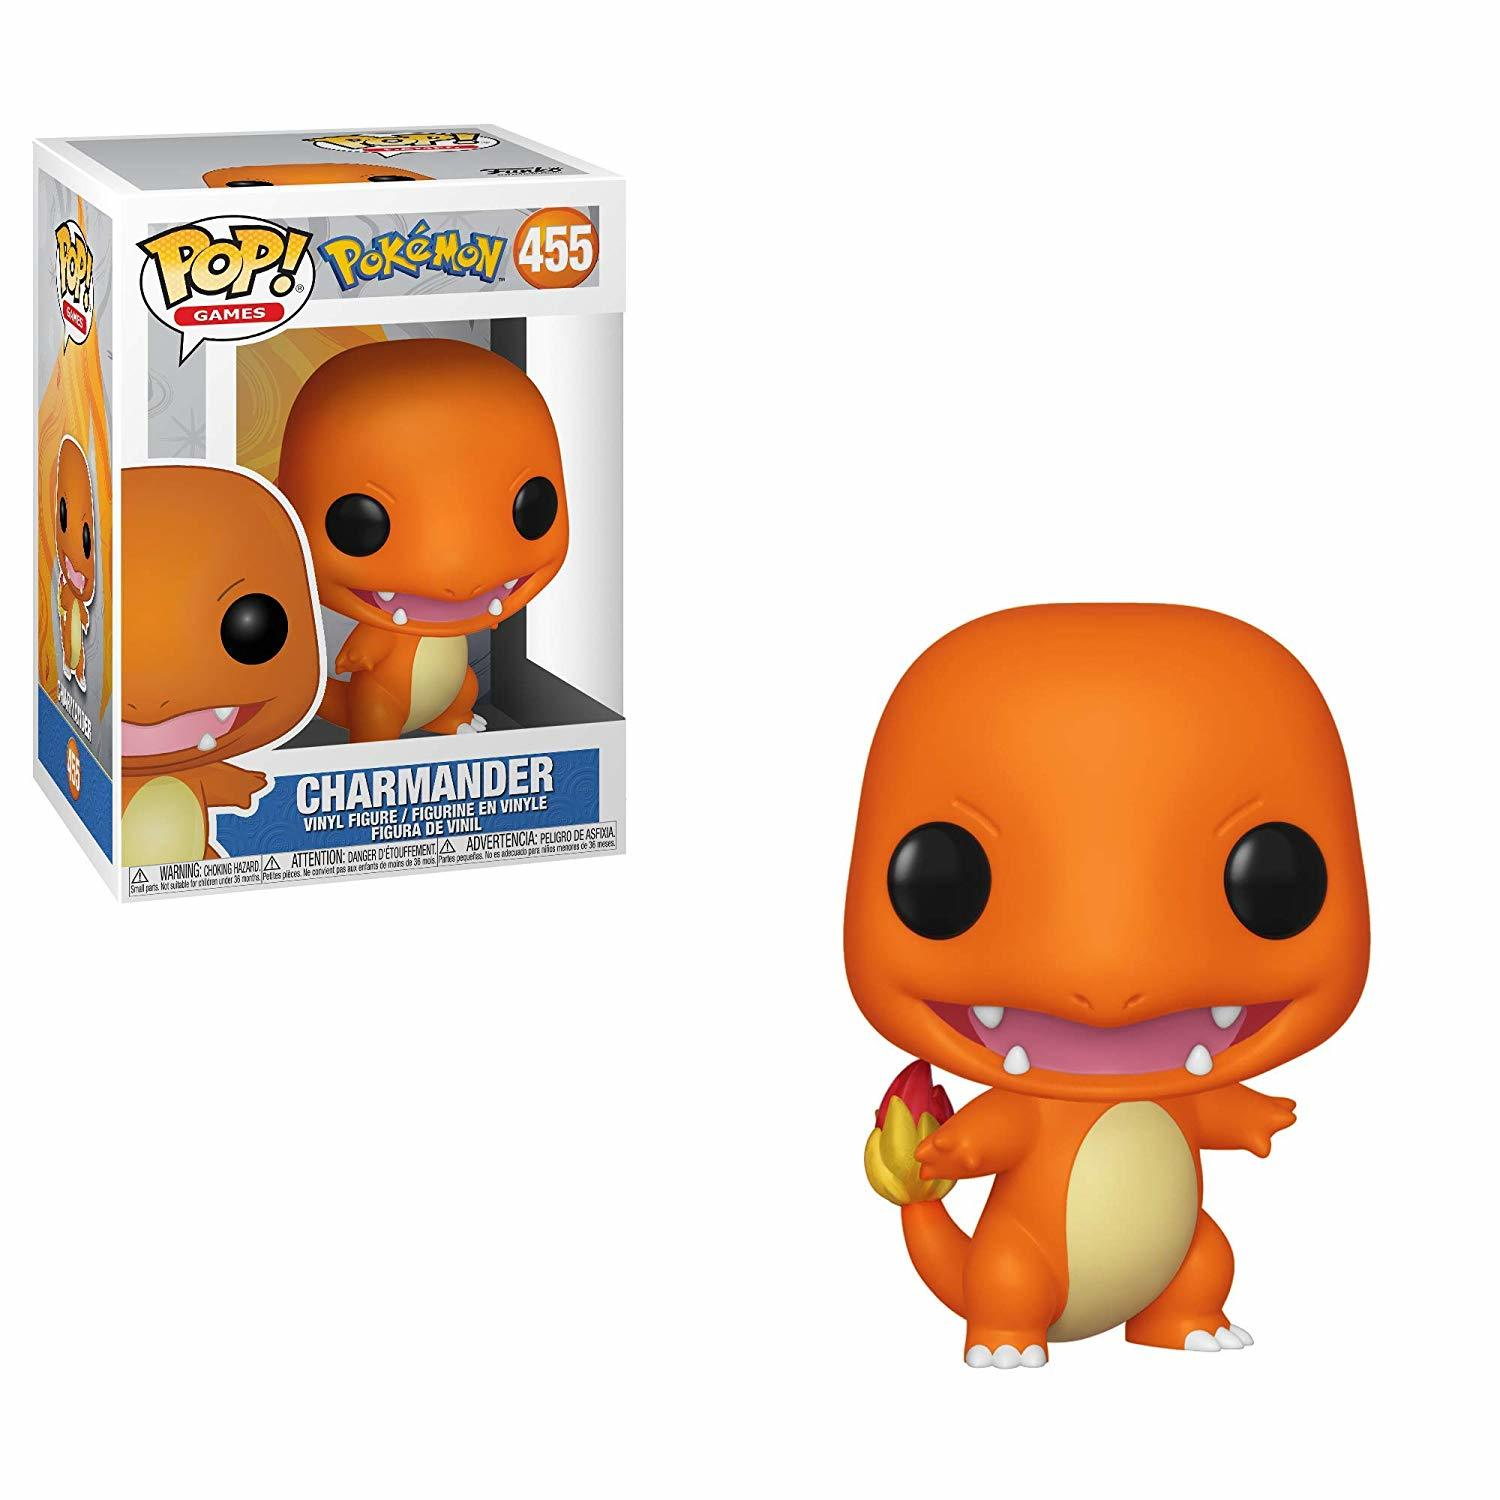 Charmander - Funko Pop! - Pokémon